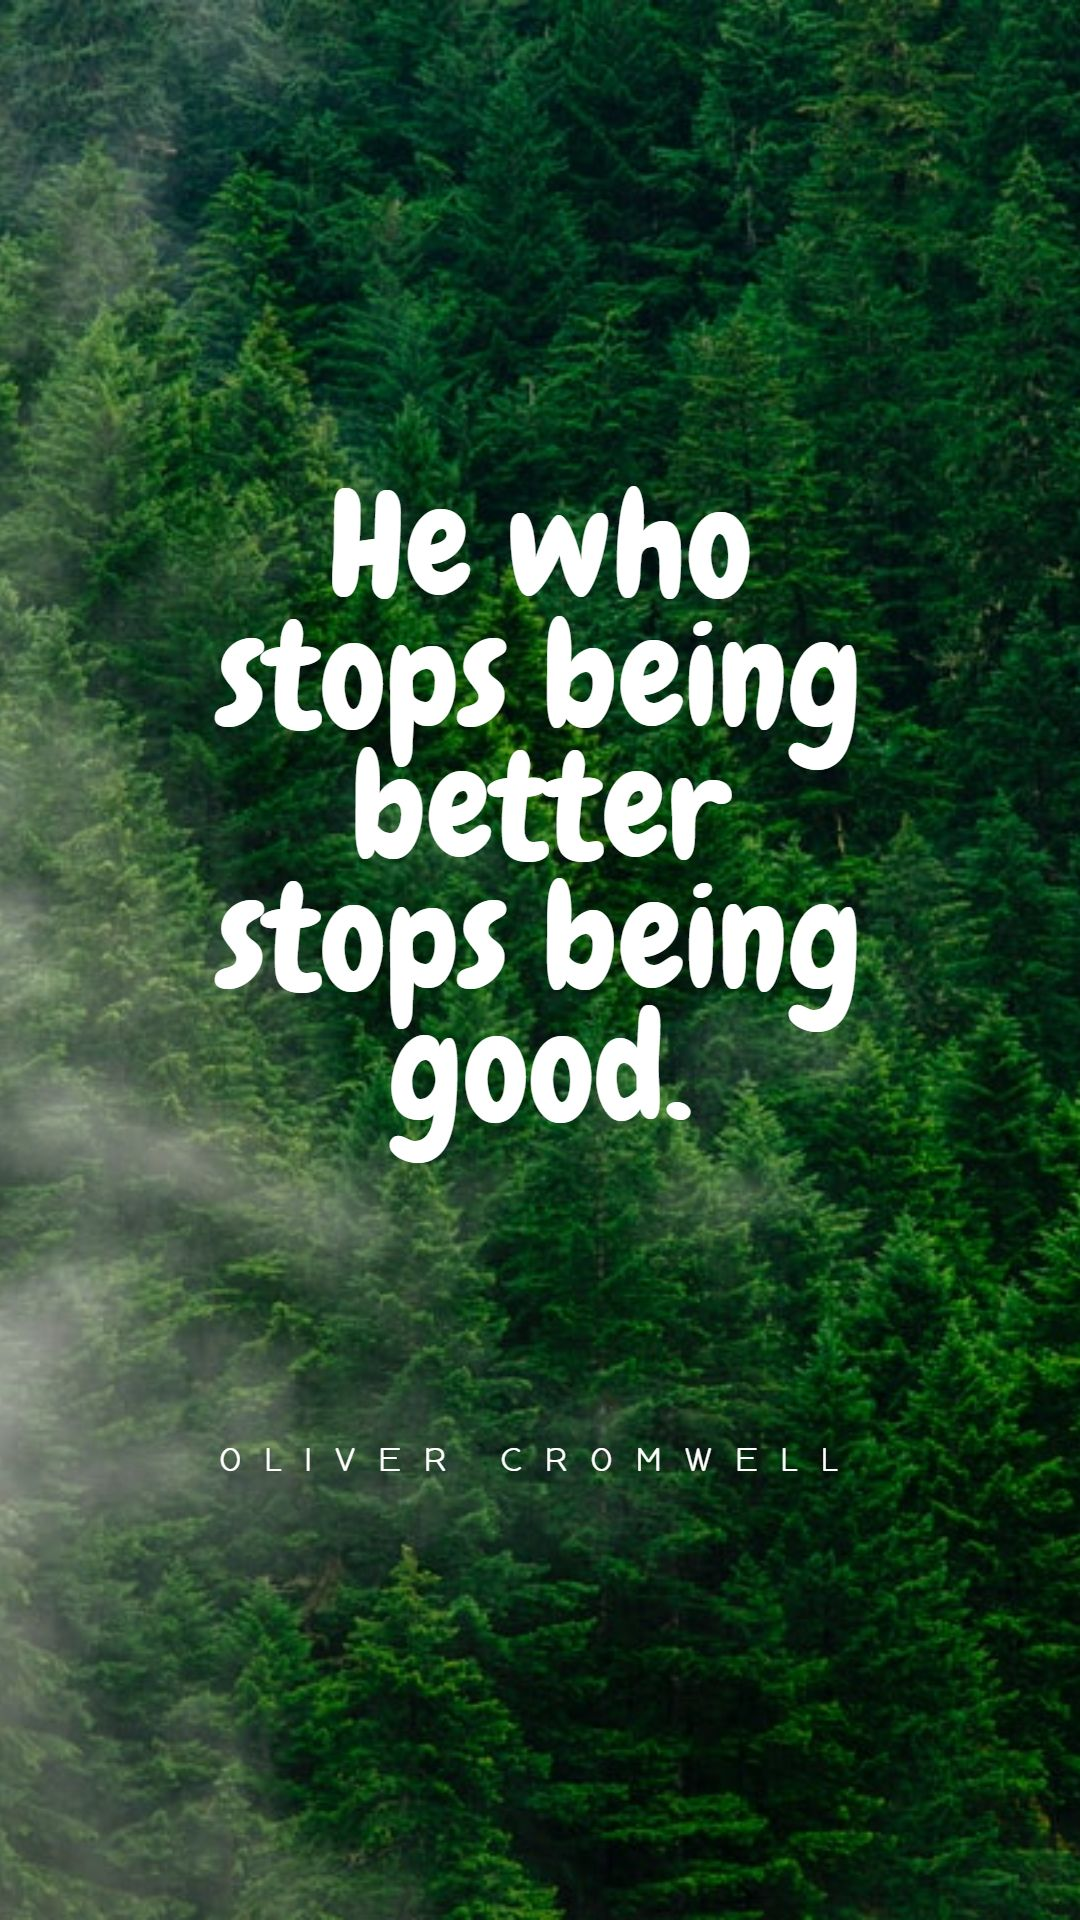 Quotes image of He who stops being better stops being good.